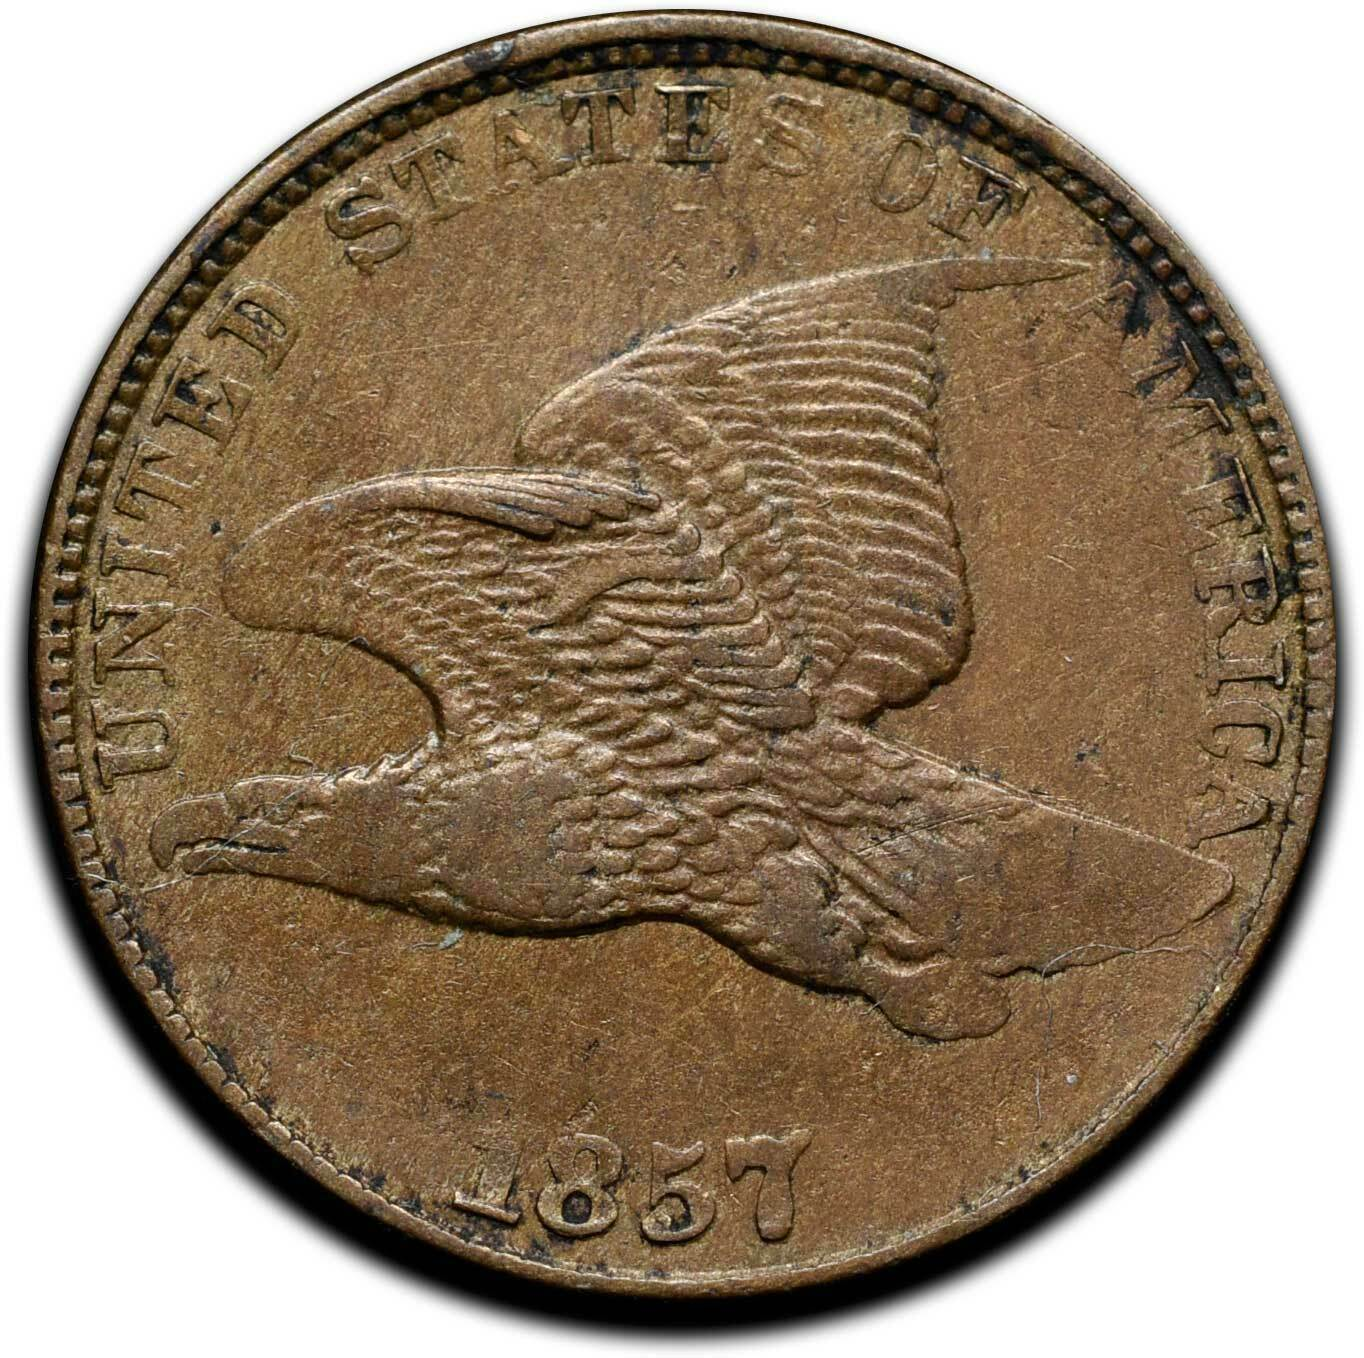 1857 Flying Eagle Head Cent Penny Coin Lot# A 334